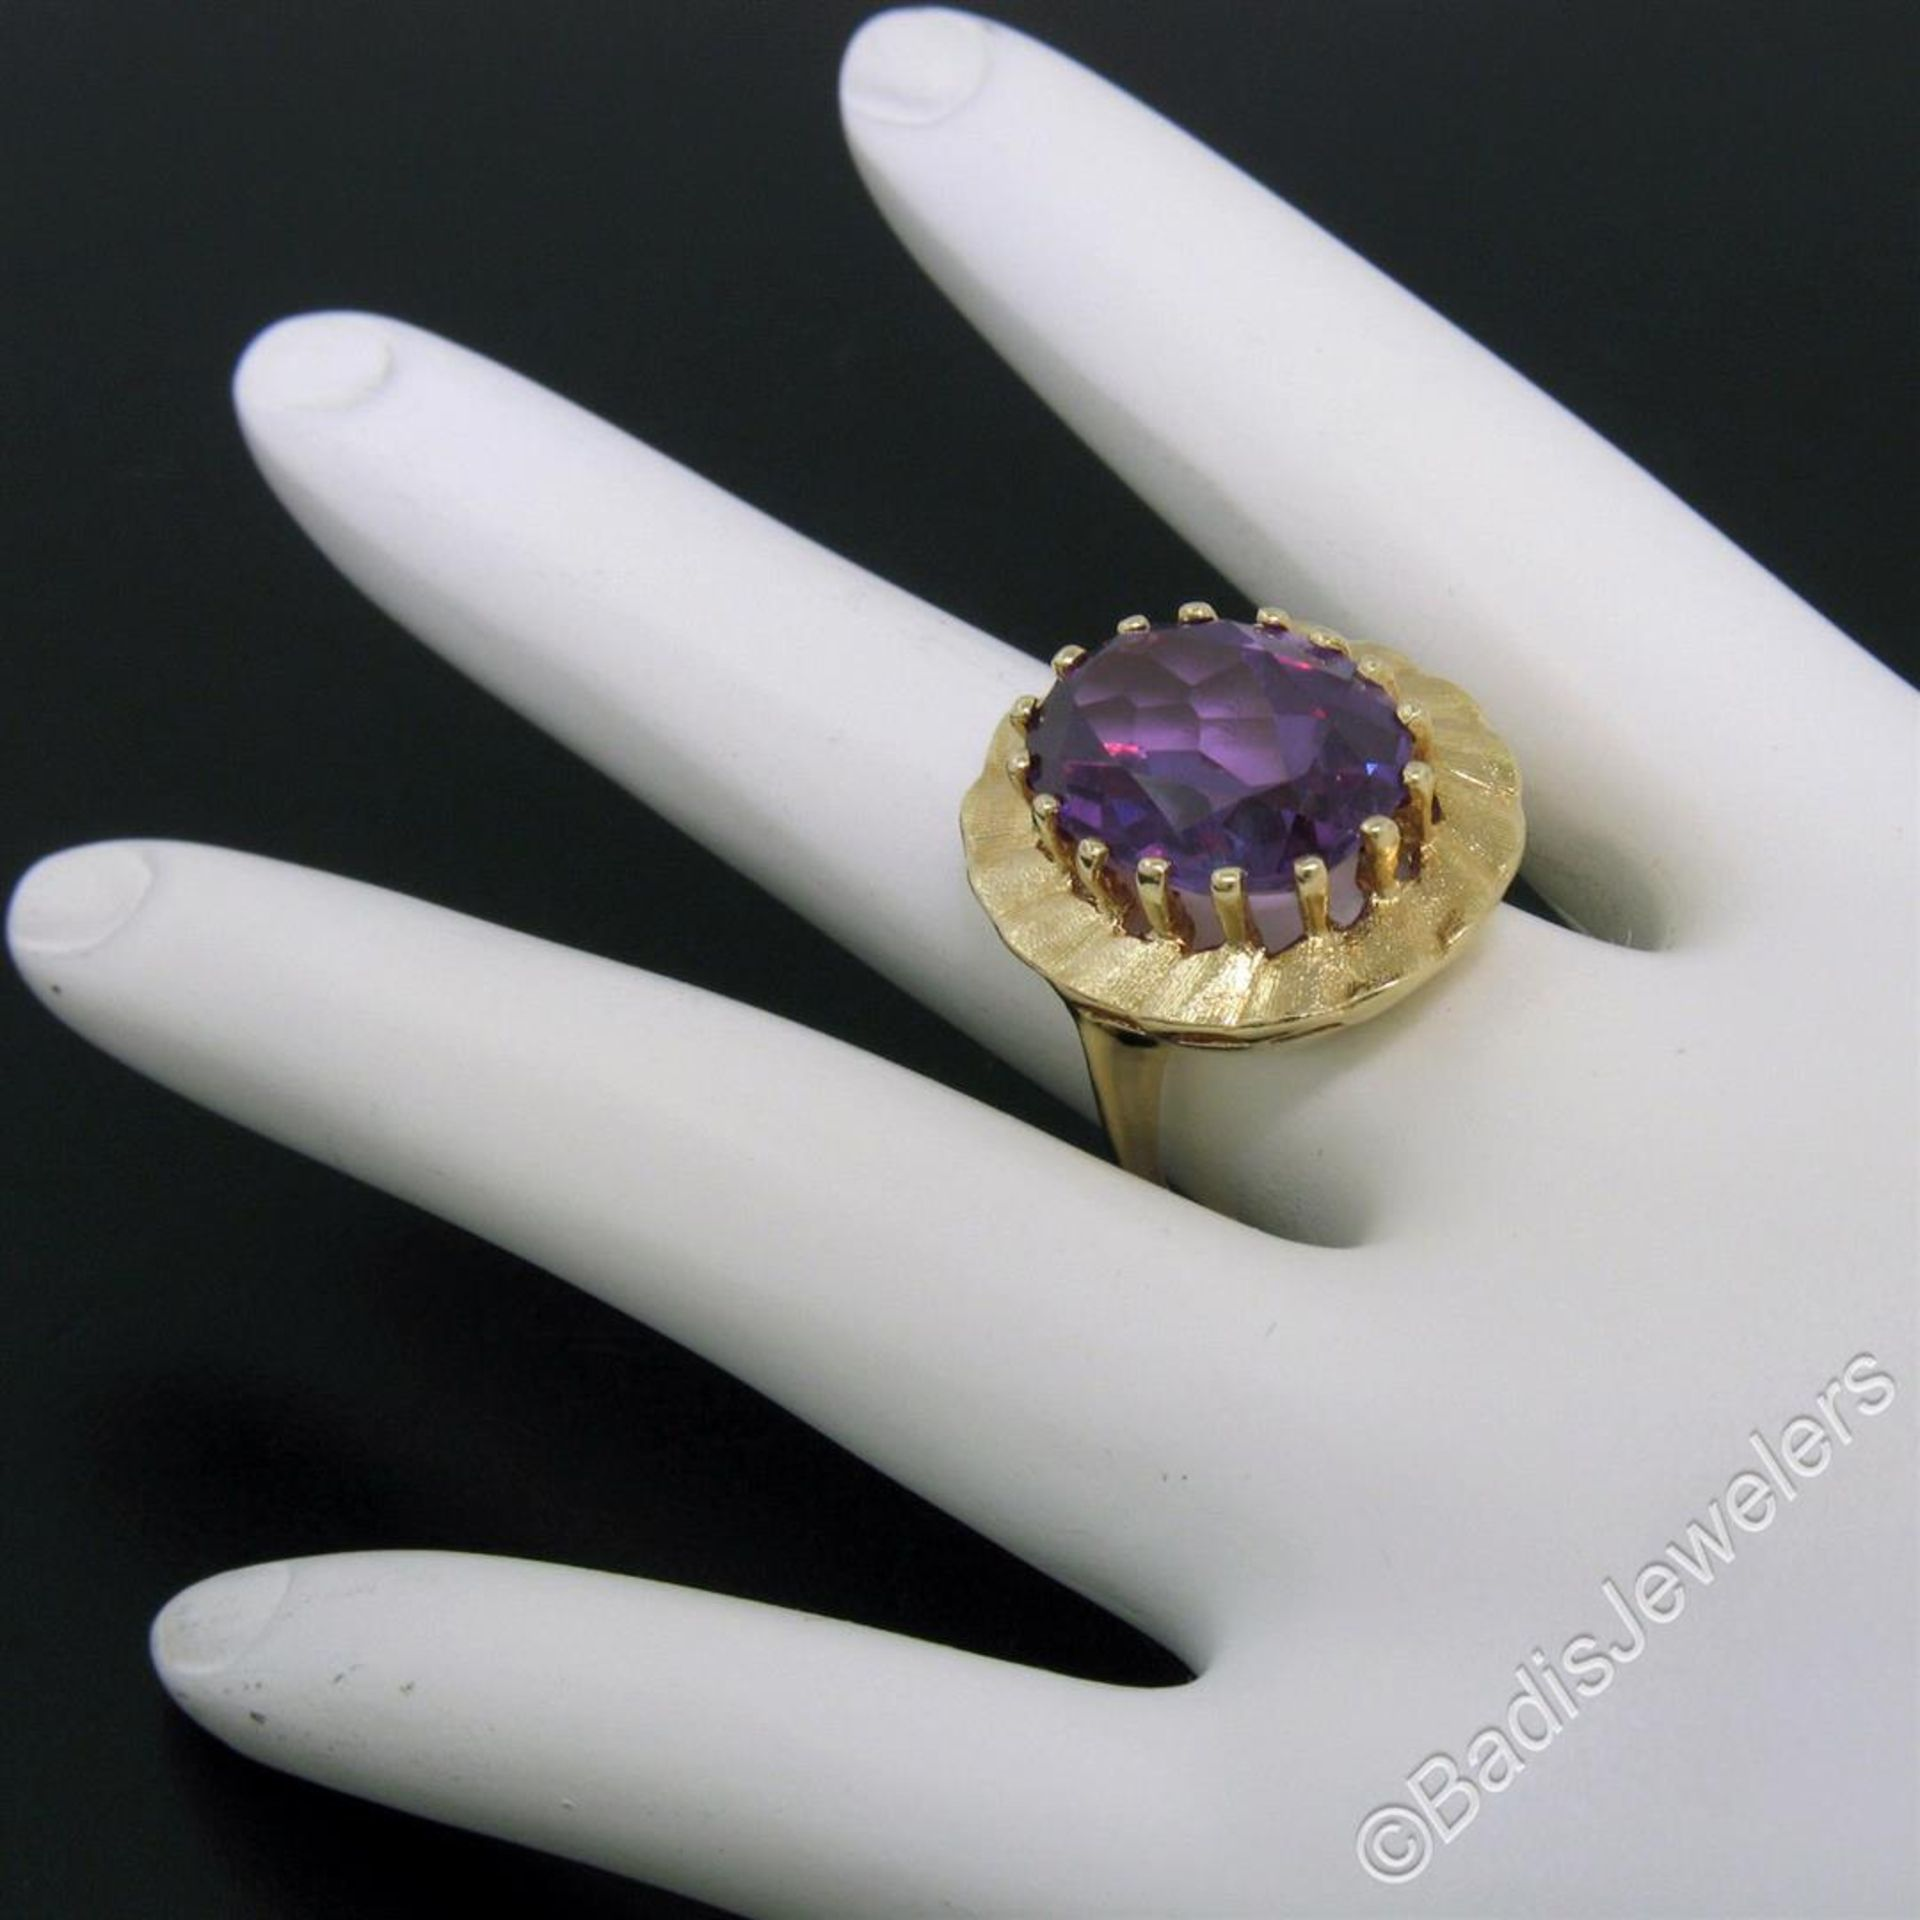 Vintage 14kt Yellow Gold Oval Synthetic Alexandrite Ring w/ Textured Halo - Image 9 of 9